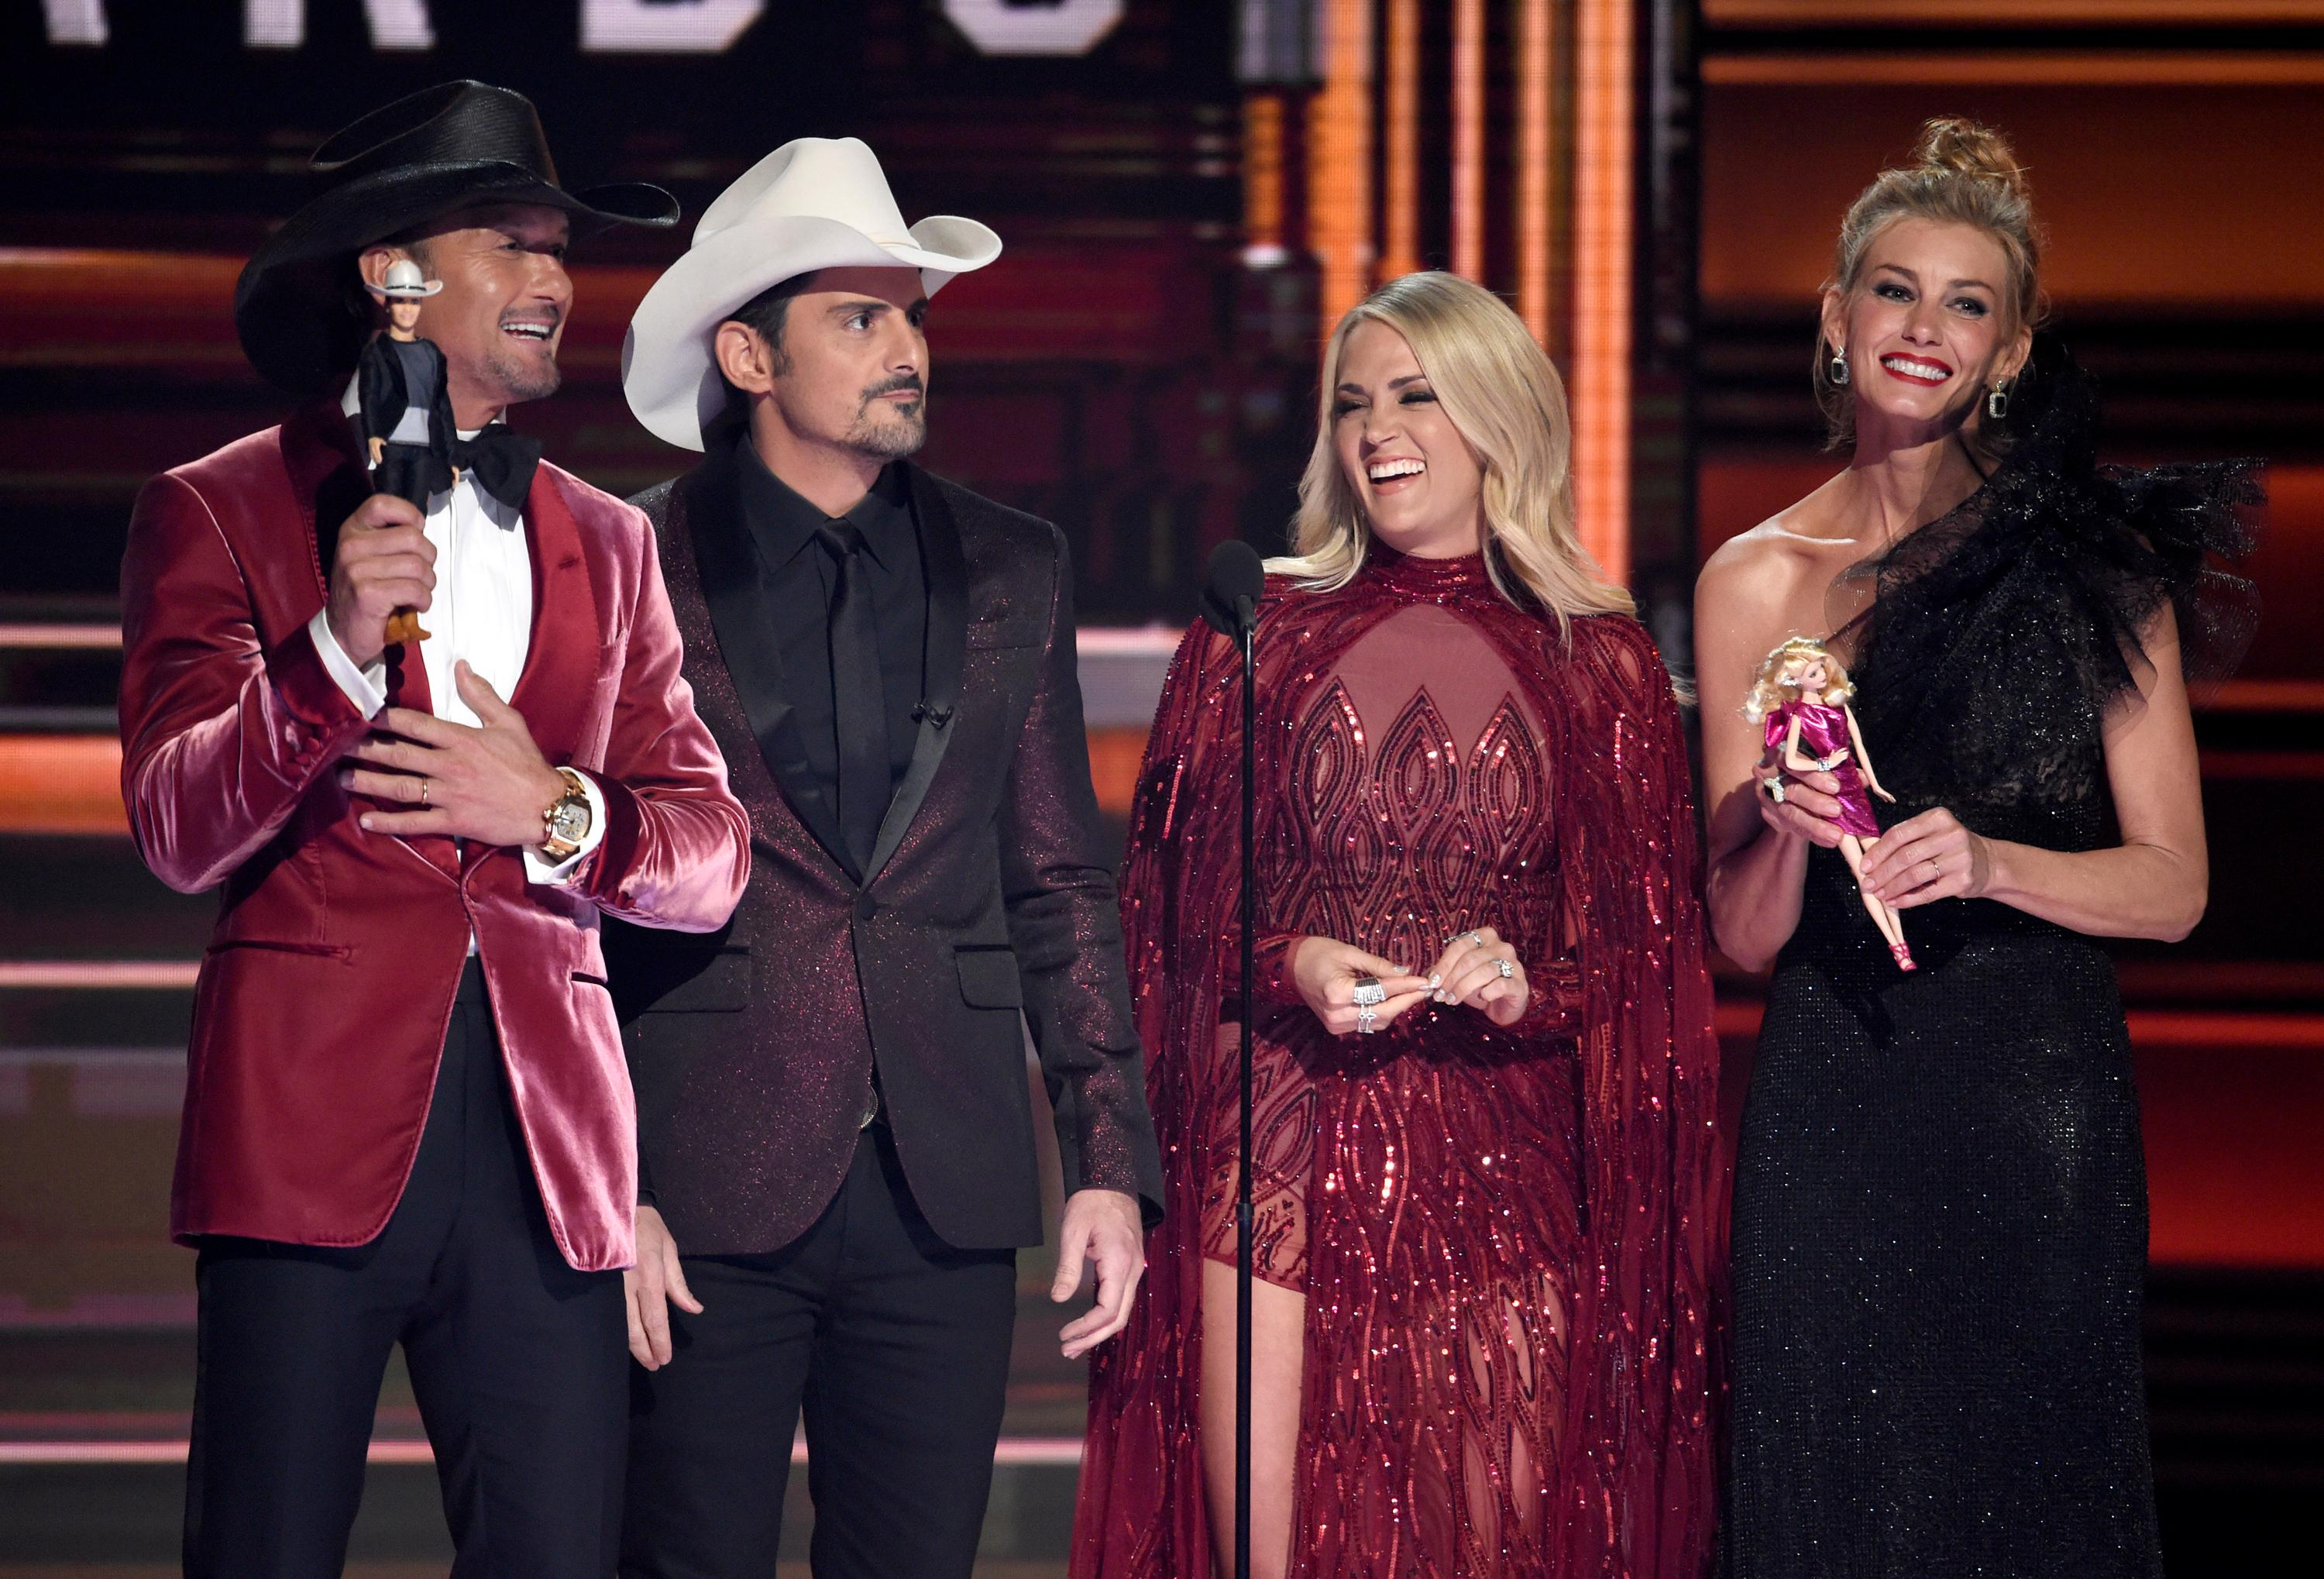 Tim McGraw, from left, Brad Paisley, Carrie Underwood and Faith Hill speak at the 51st annual CMA Awards at the Bridgestone Arena on Wednesday, Nov. 8, 2017, in Nashville, Tenn. (Photo by Chris Pizzello/Invision/AP)